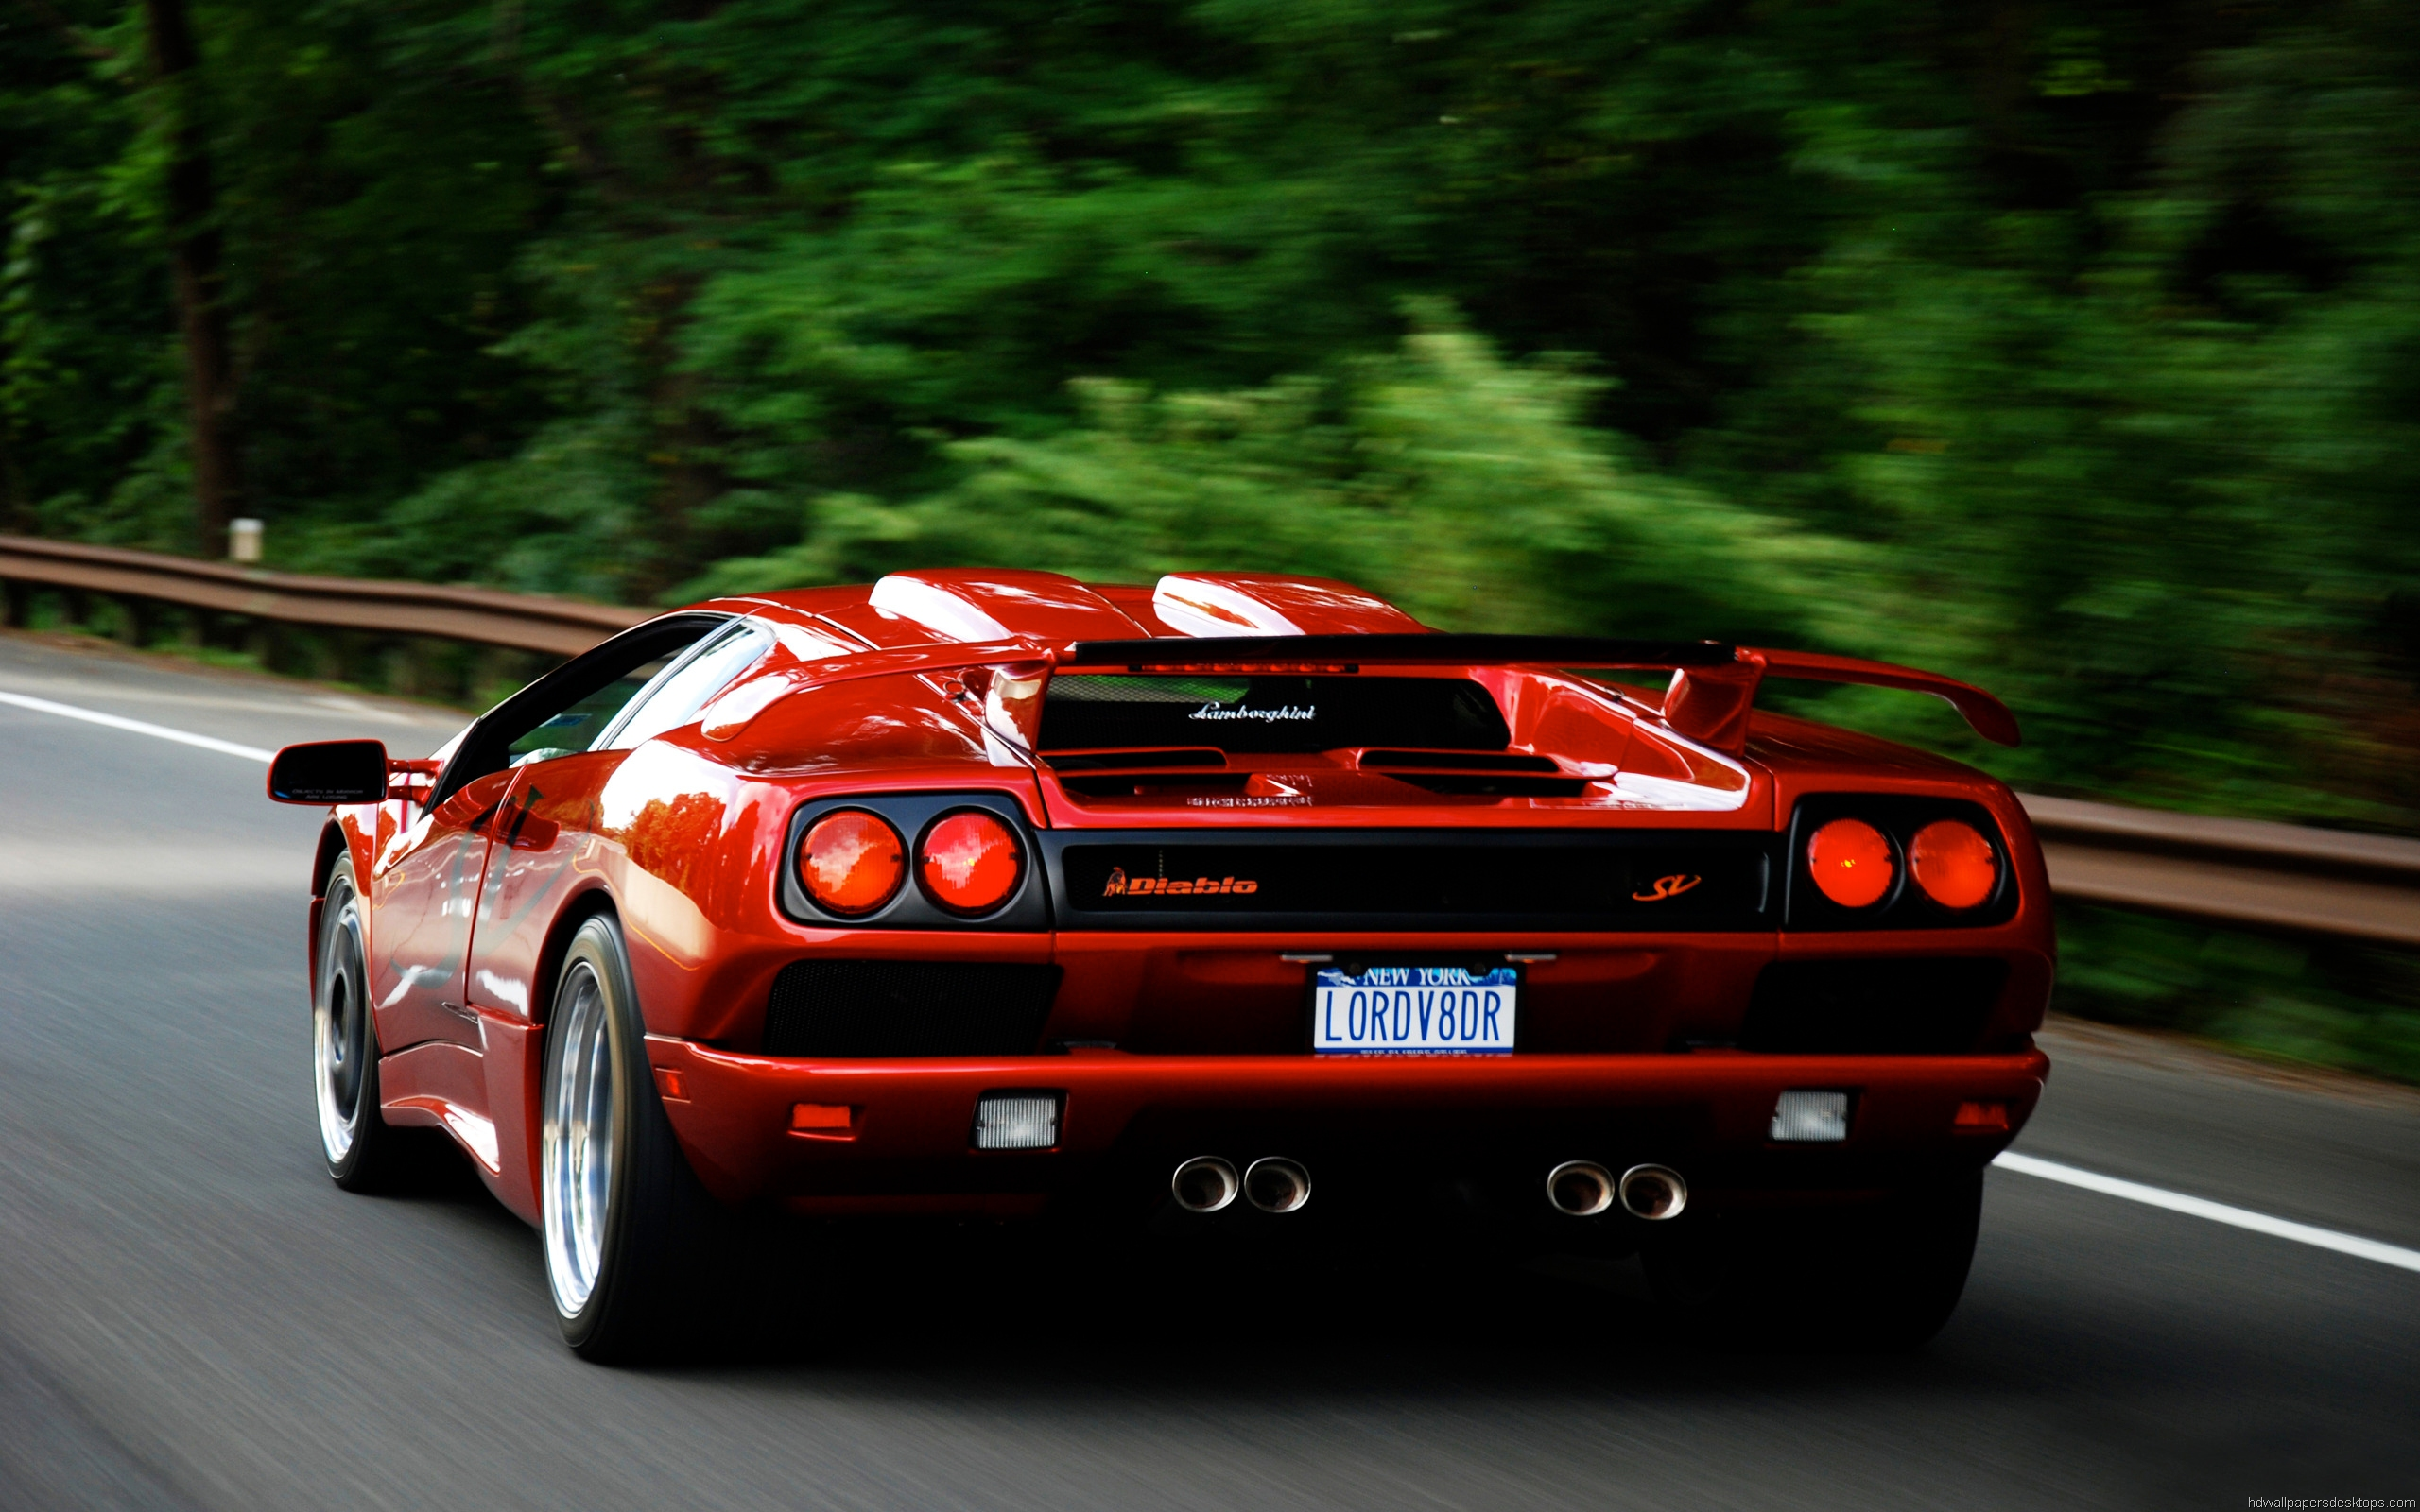 cars wallpapers hd full hd 1080p desktop backgrounds 2560x1600 2560x1600